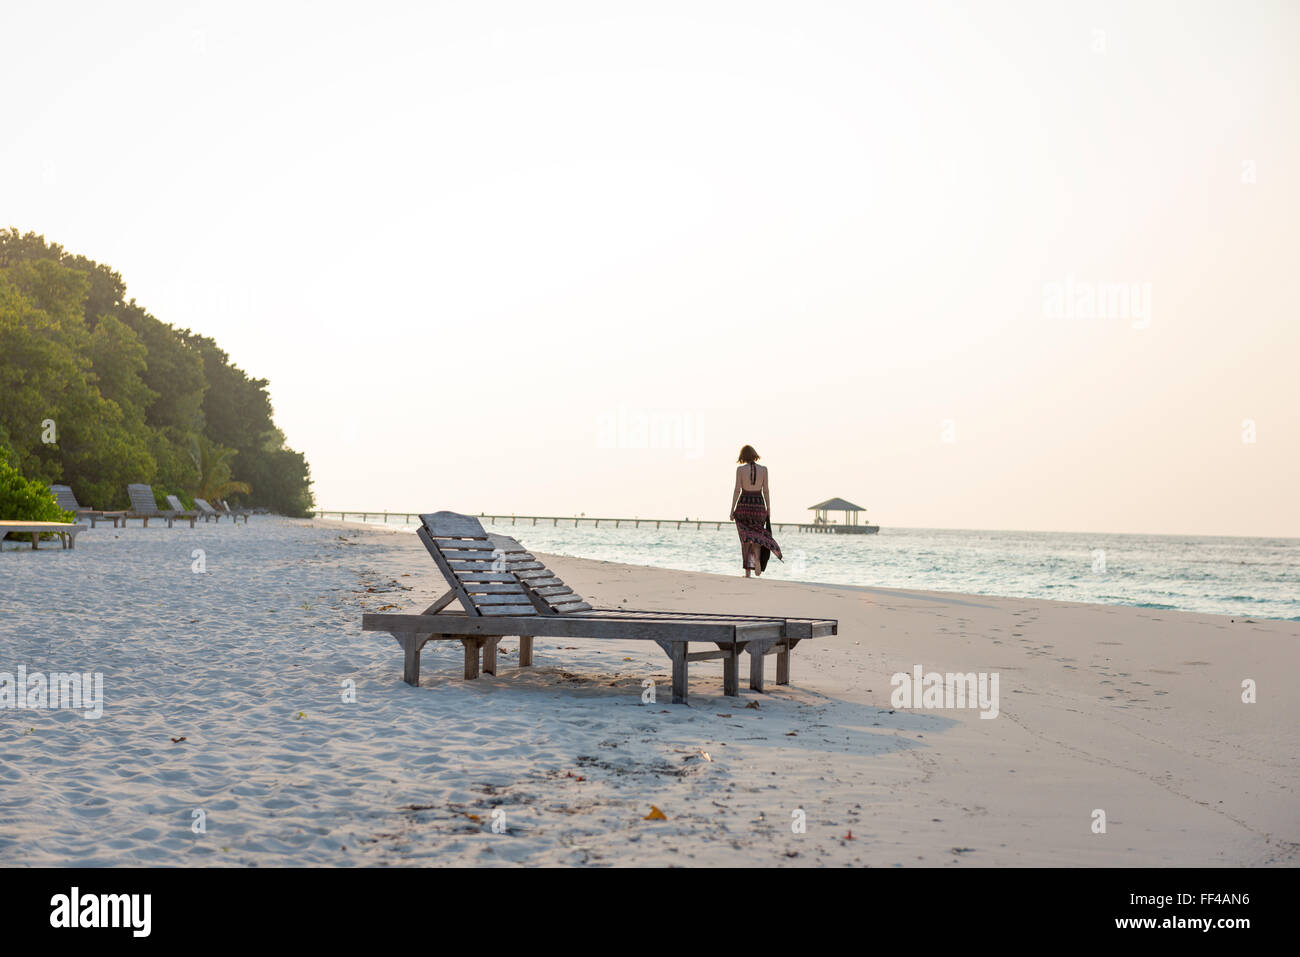 sunrise at a lonely beach with beautiful woman walking past. lonely mood in warm sunshine. - Stock Image